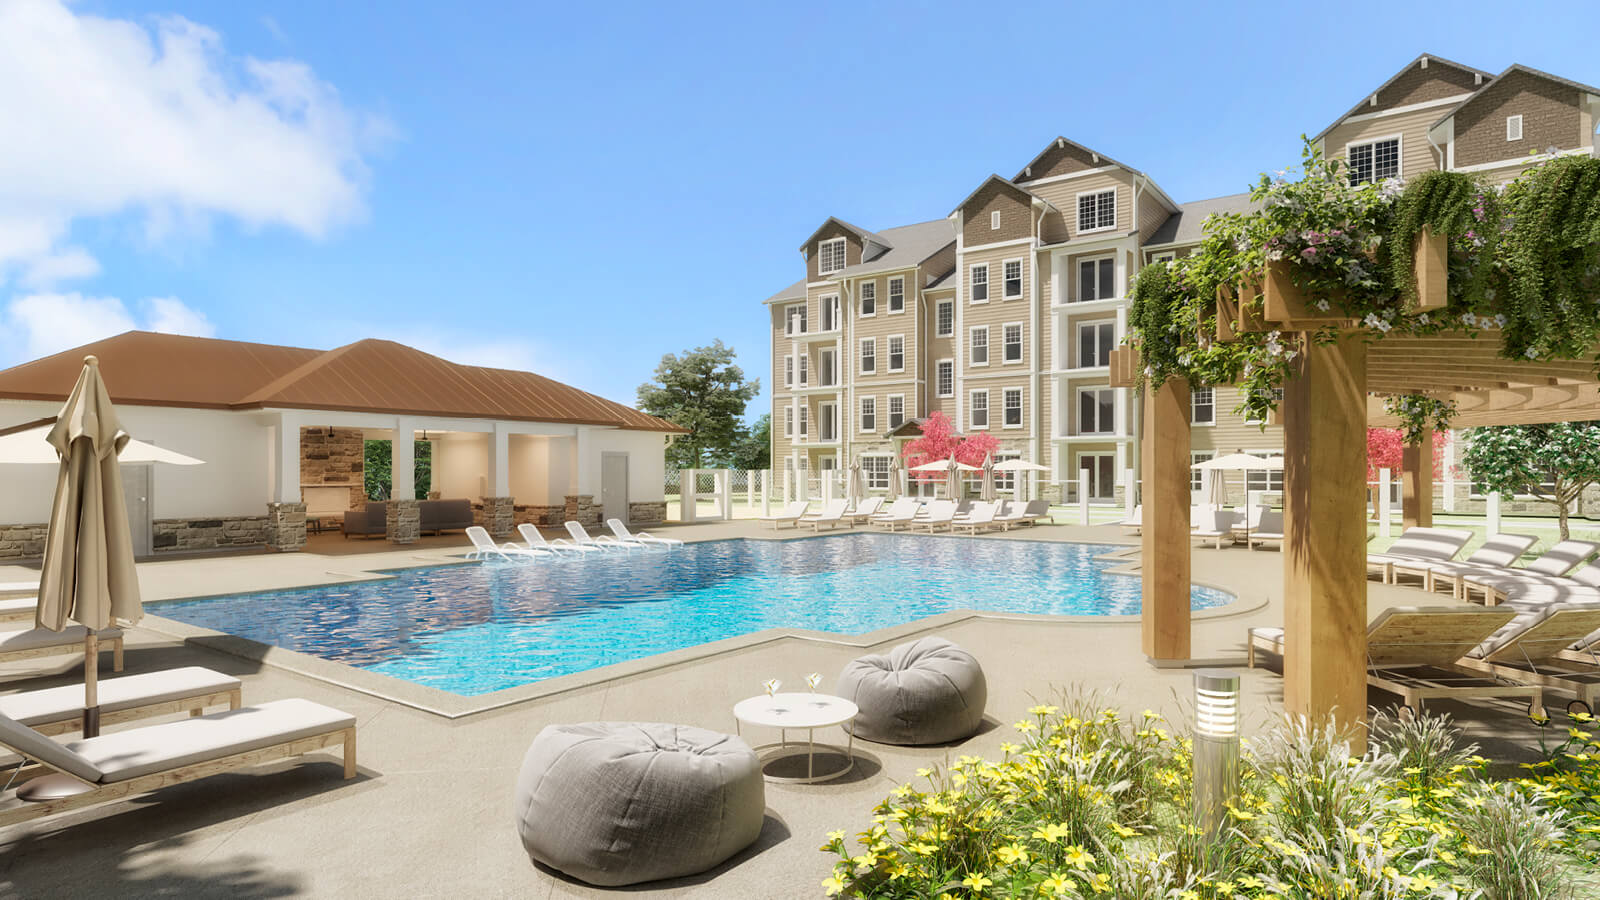 Enjoy our resort-style pool with comfortable lounge seating and pergola.